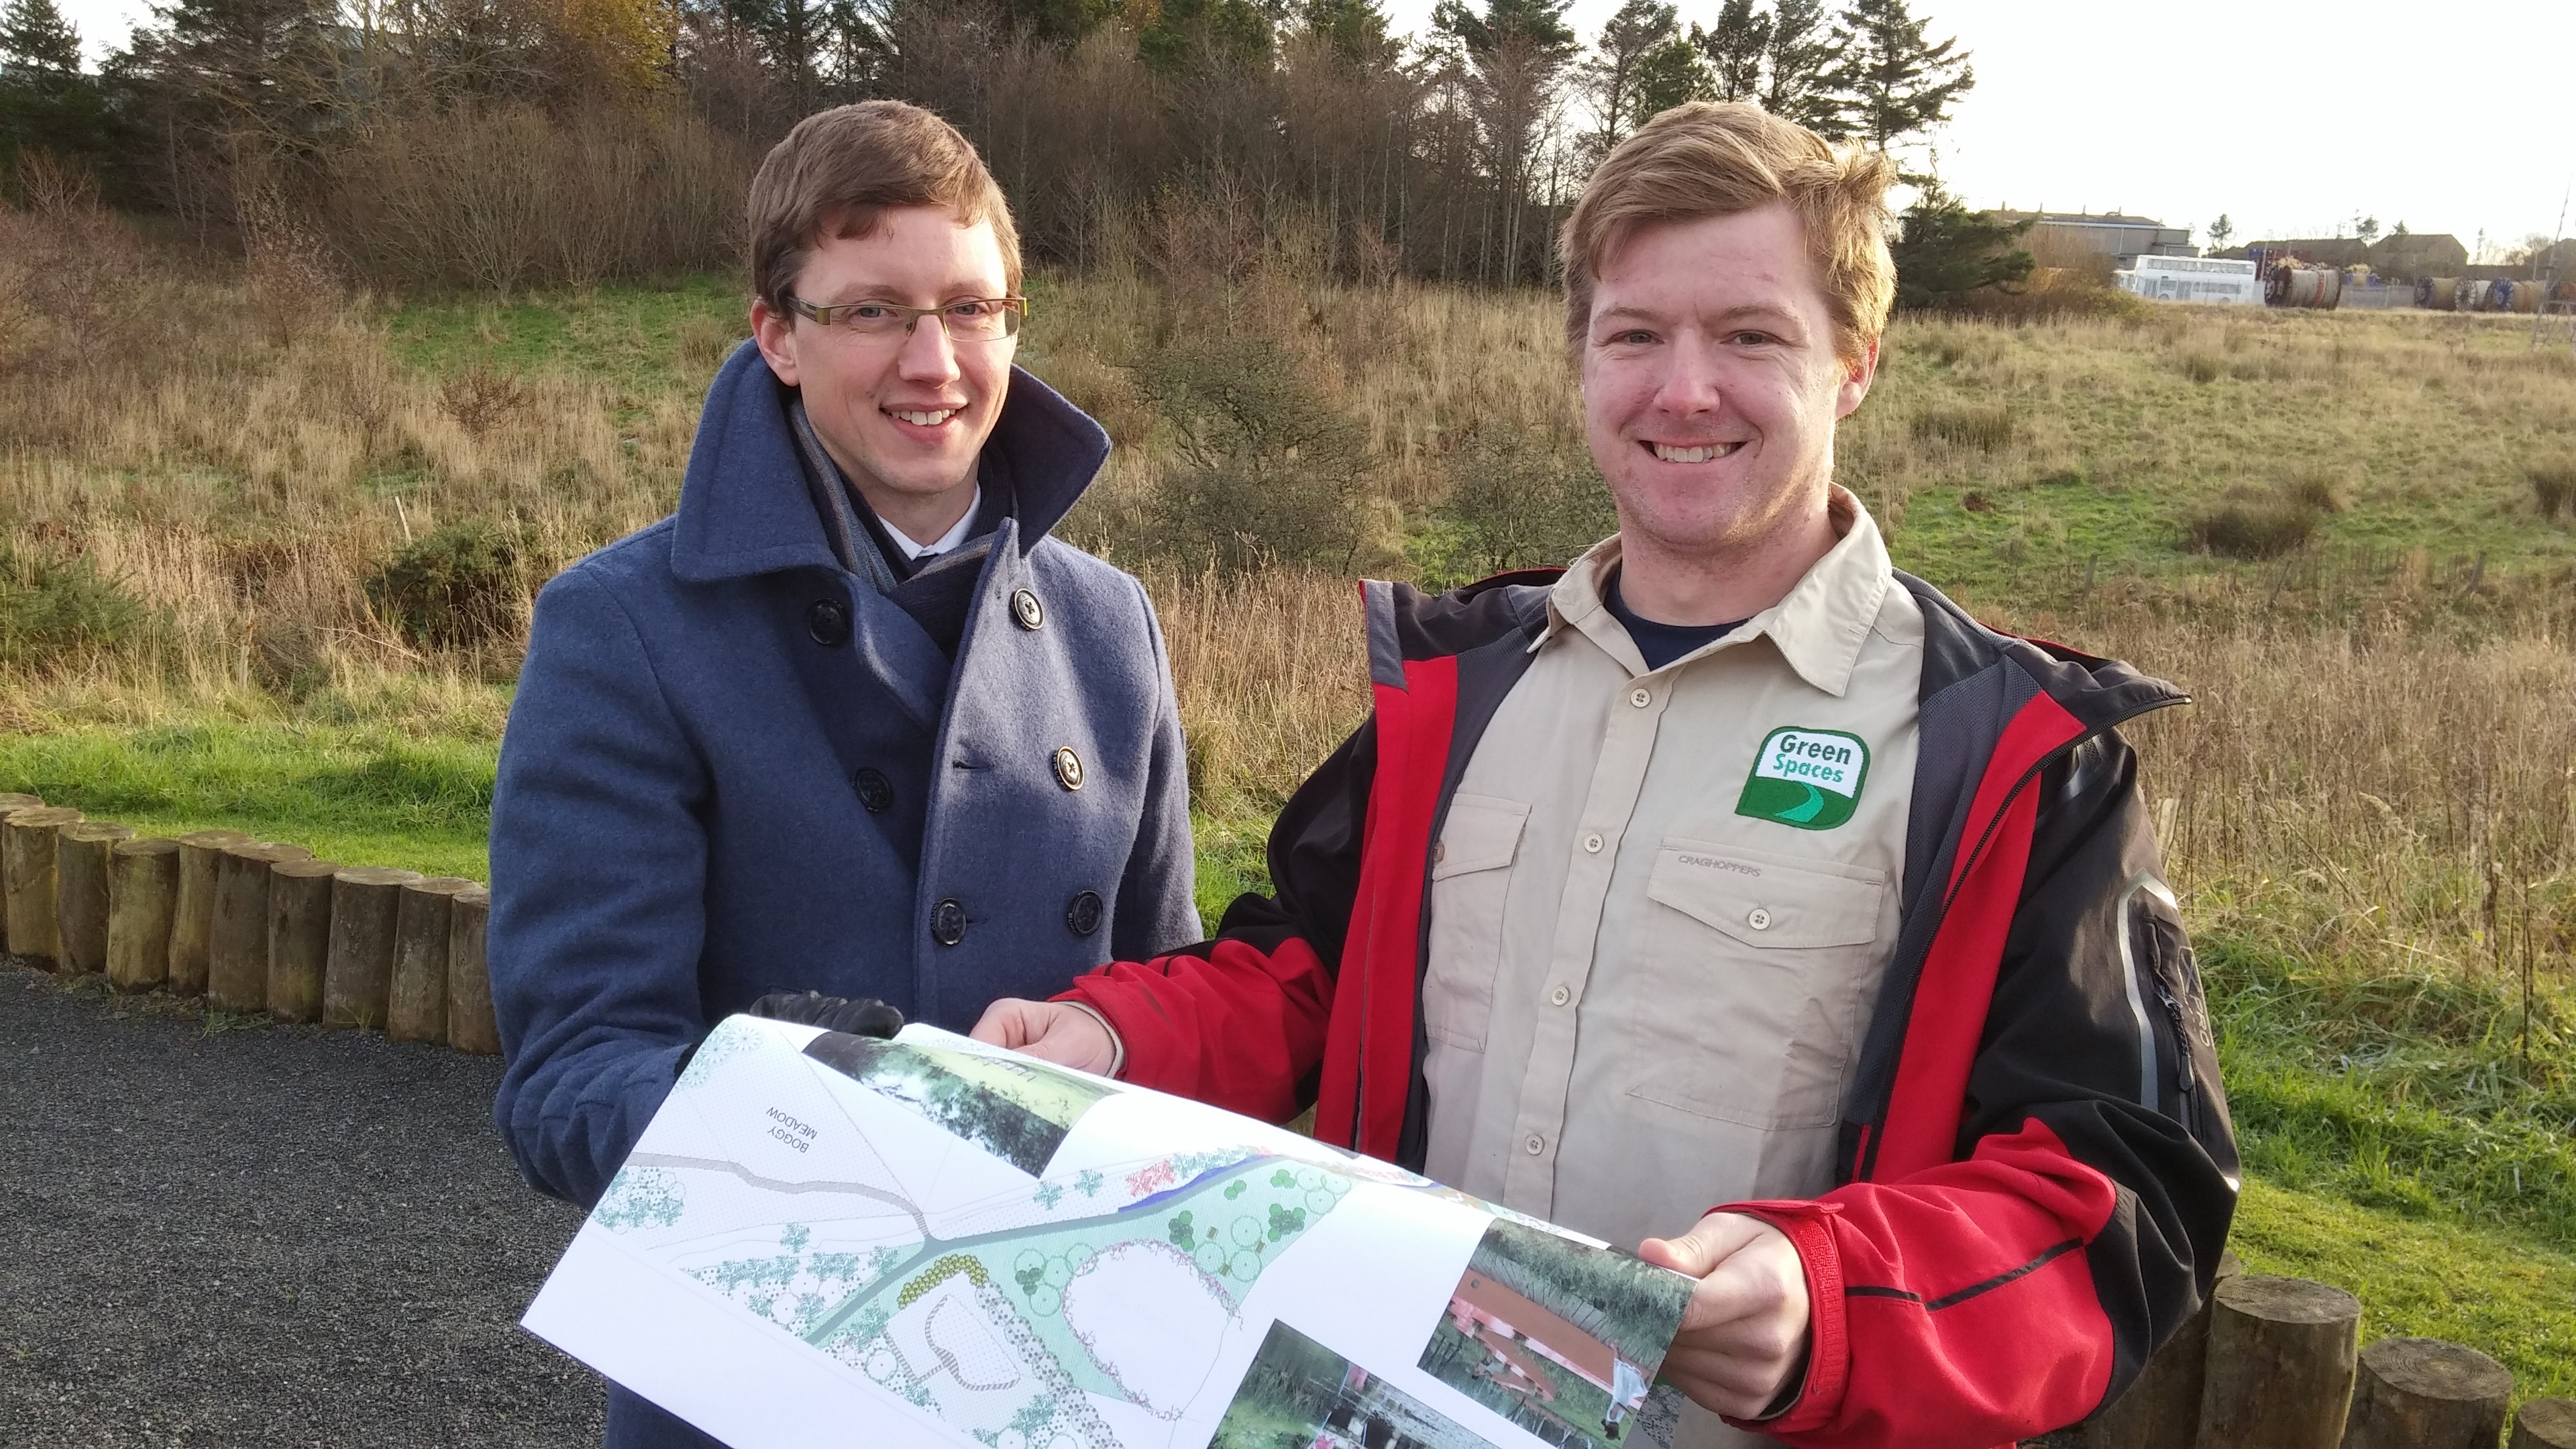 Green Spaces Officer Lewis Swales (right) and Aberdeenshire Council's Buchan Area Project Officer Robert McGregor are pictured at Collieburn